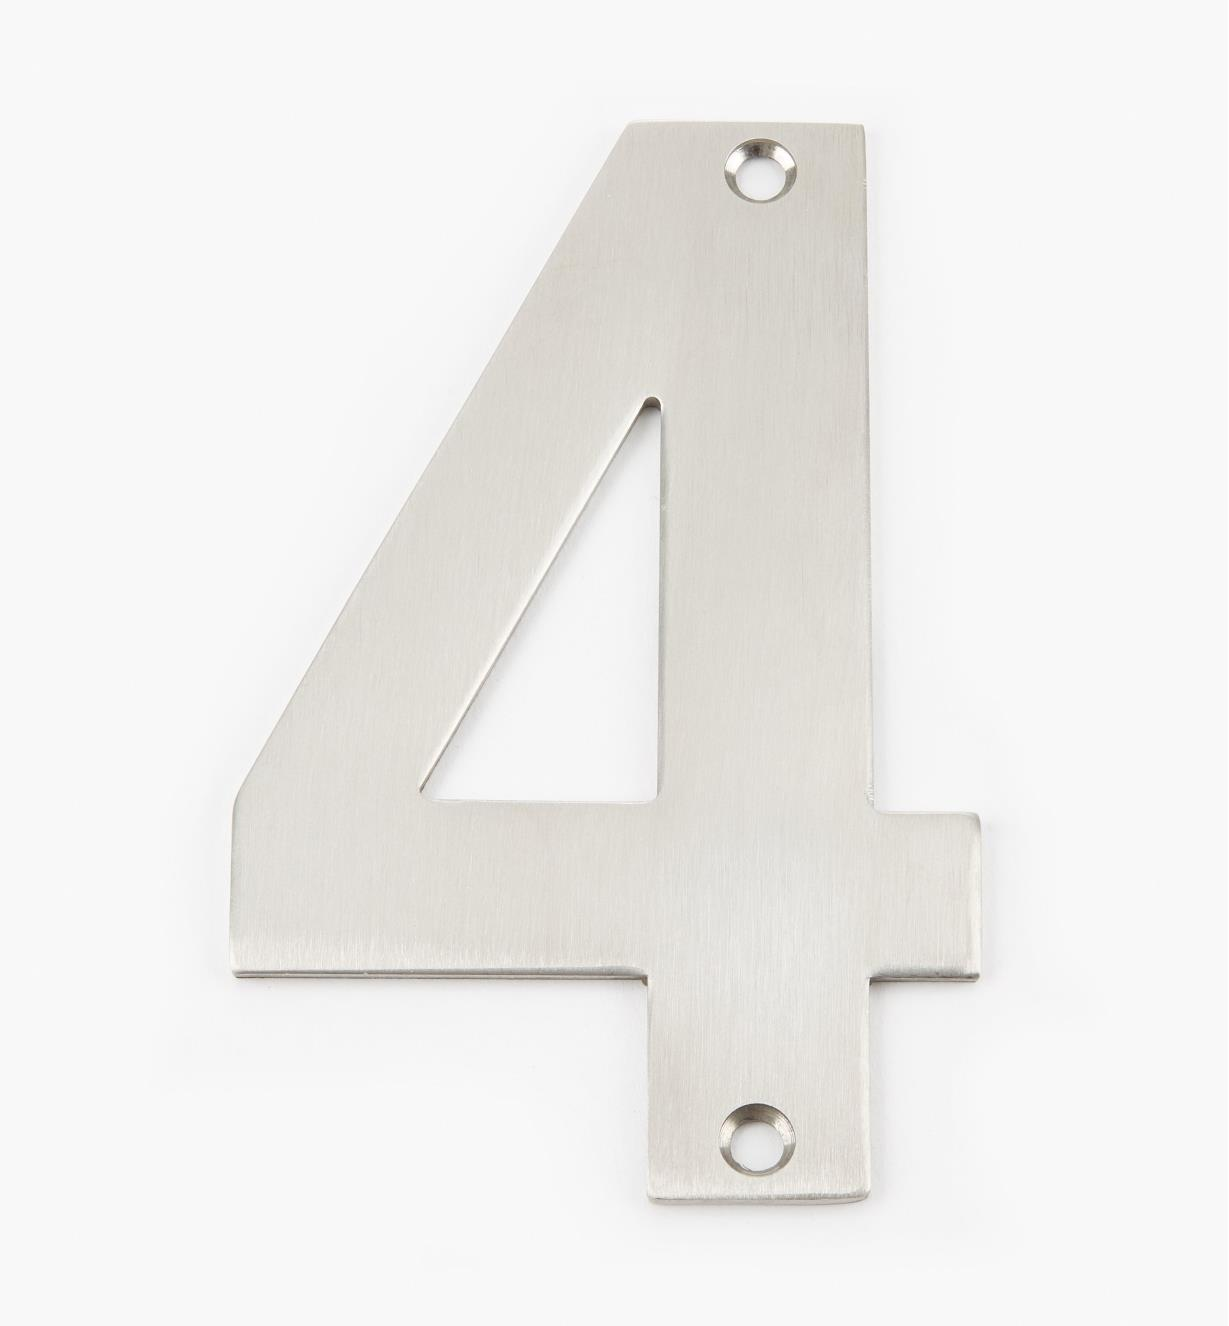 00W0894 - 130mm Stainless-Steel House Number - 4